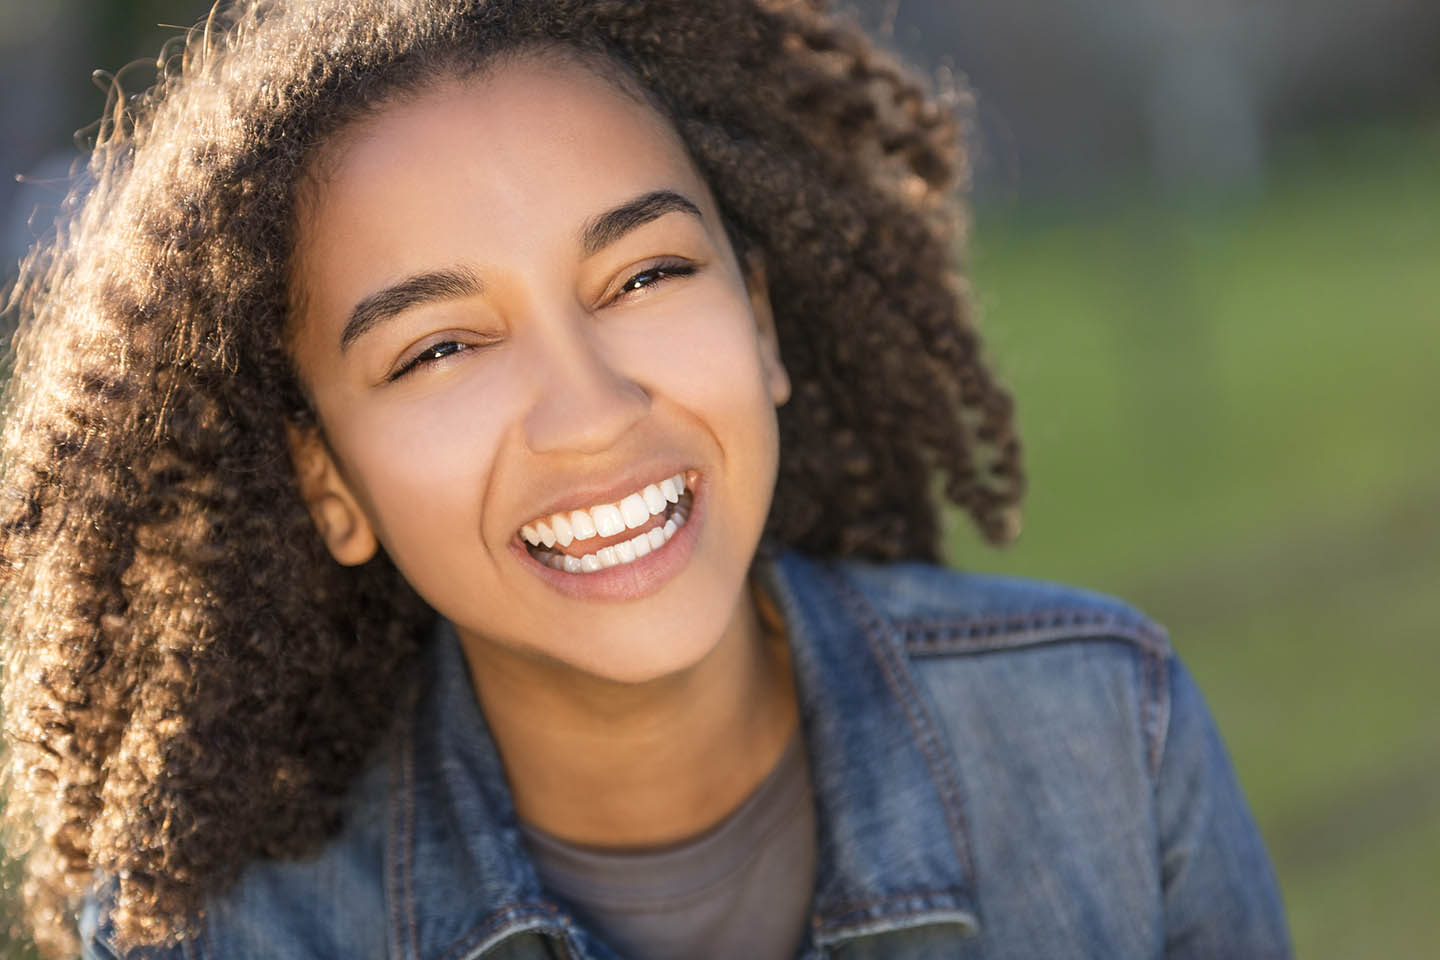 girl with jean jacket and curly hair smiling